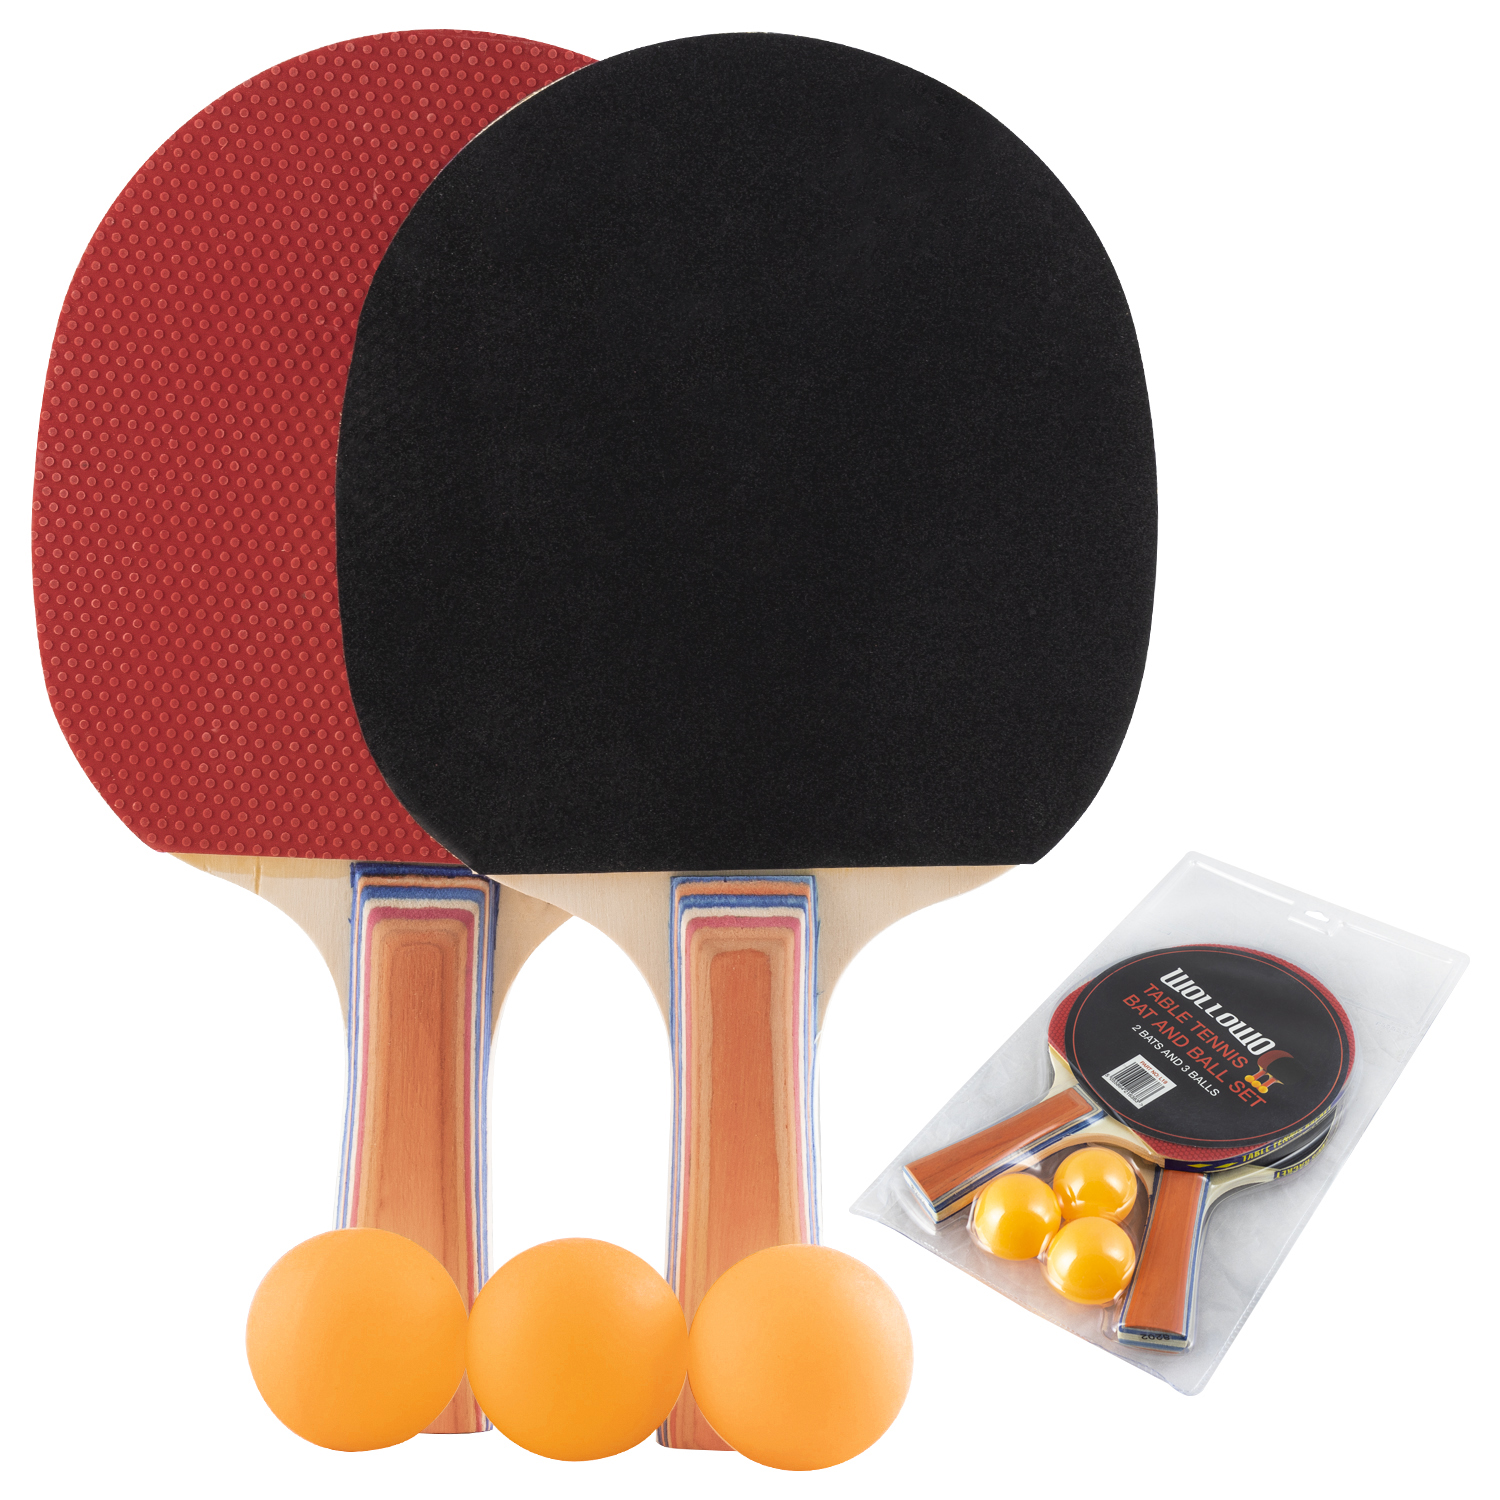 Wollowo Table Tennis Bats & Balls Set | Table Tennis | Outdoor Value